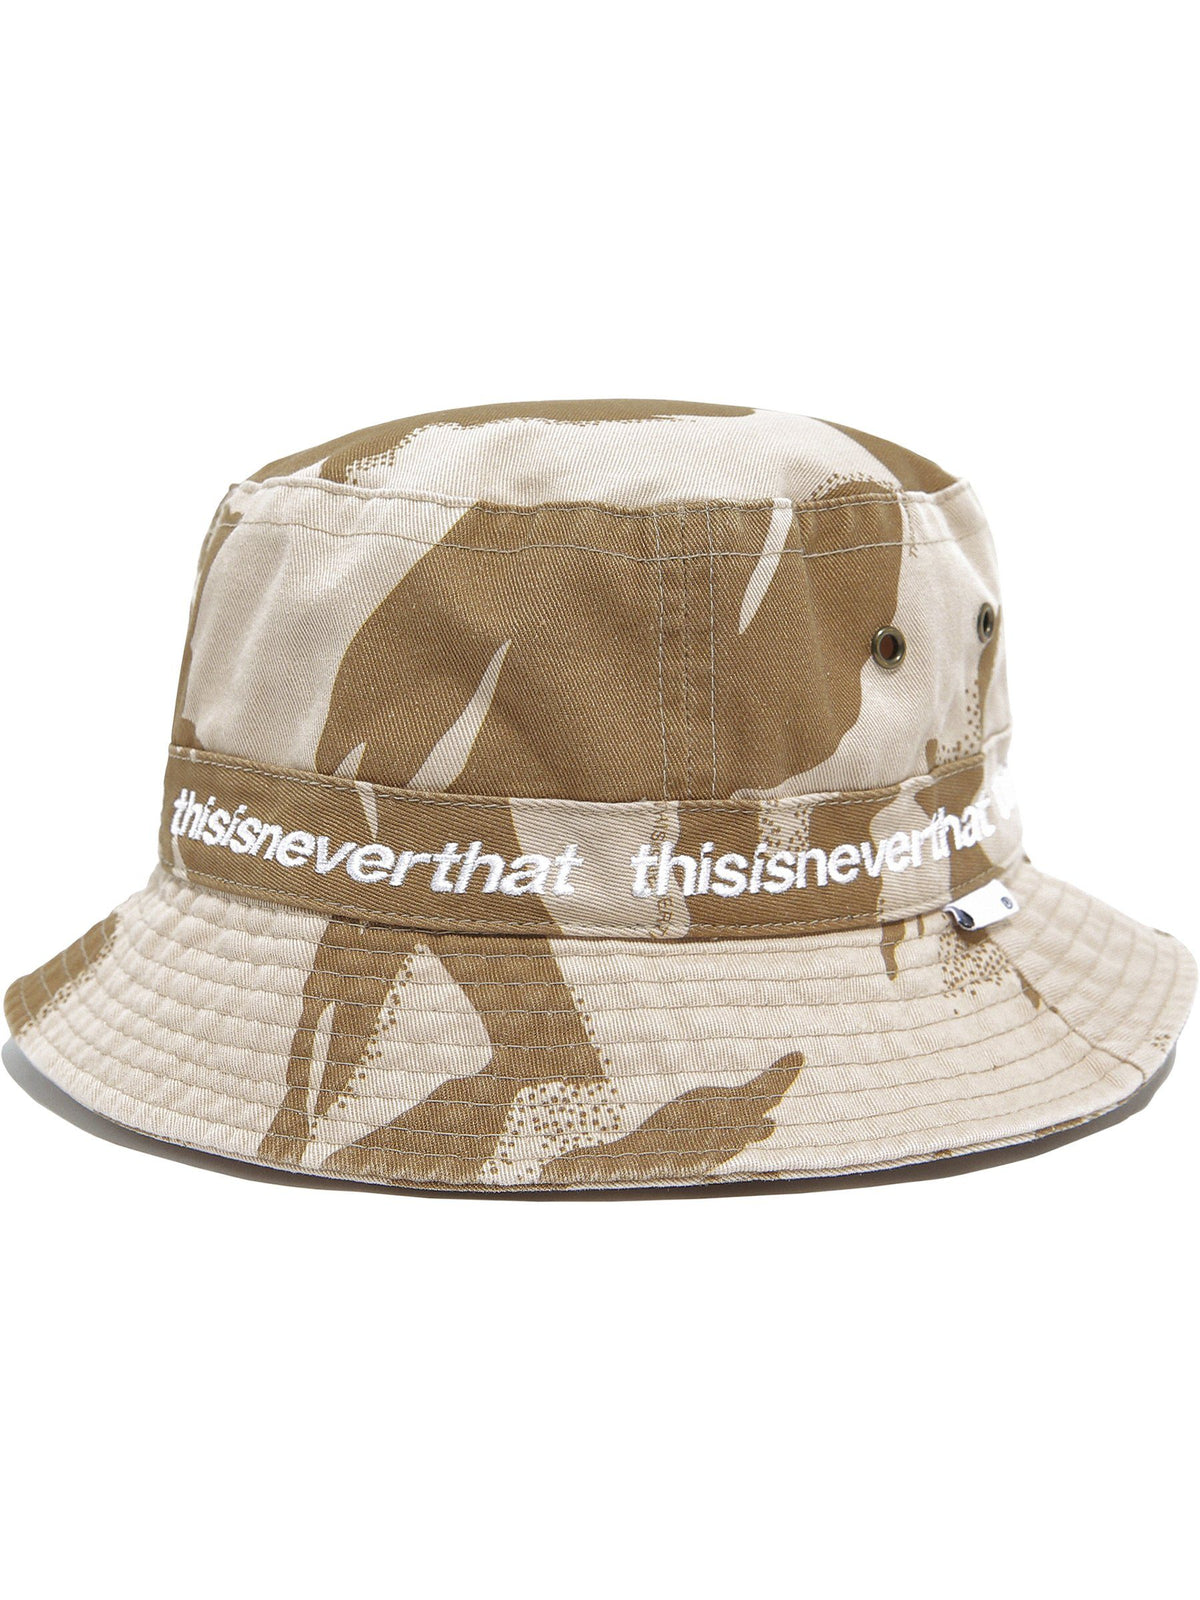 SP Bucket Hat - thisisneverthat